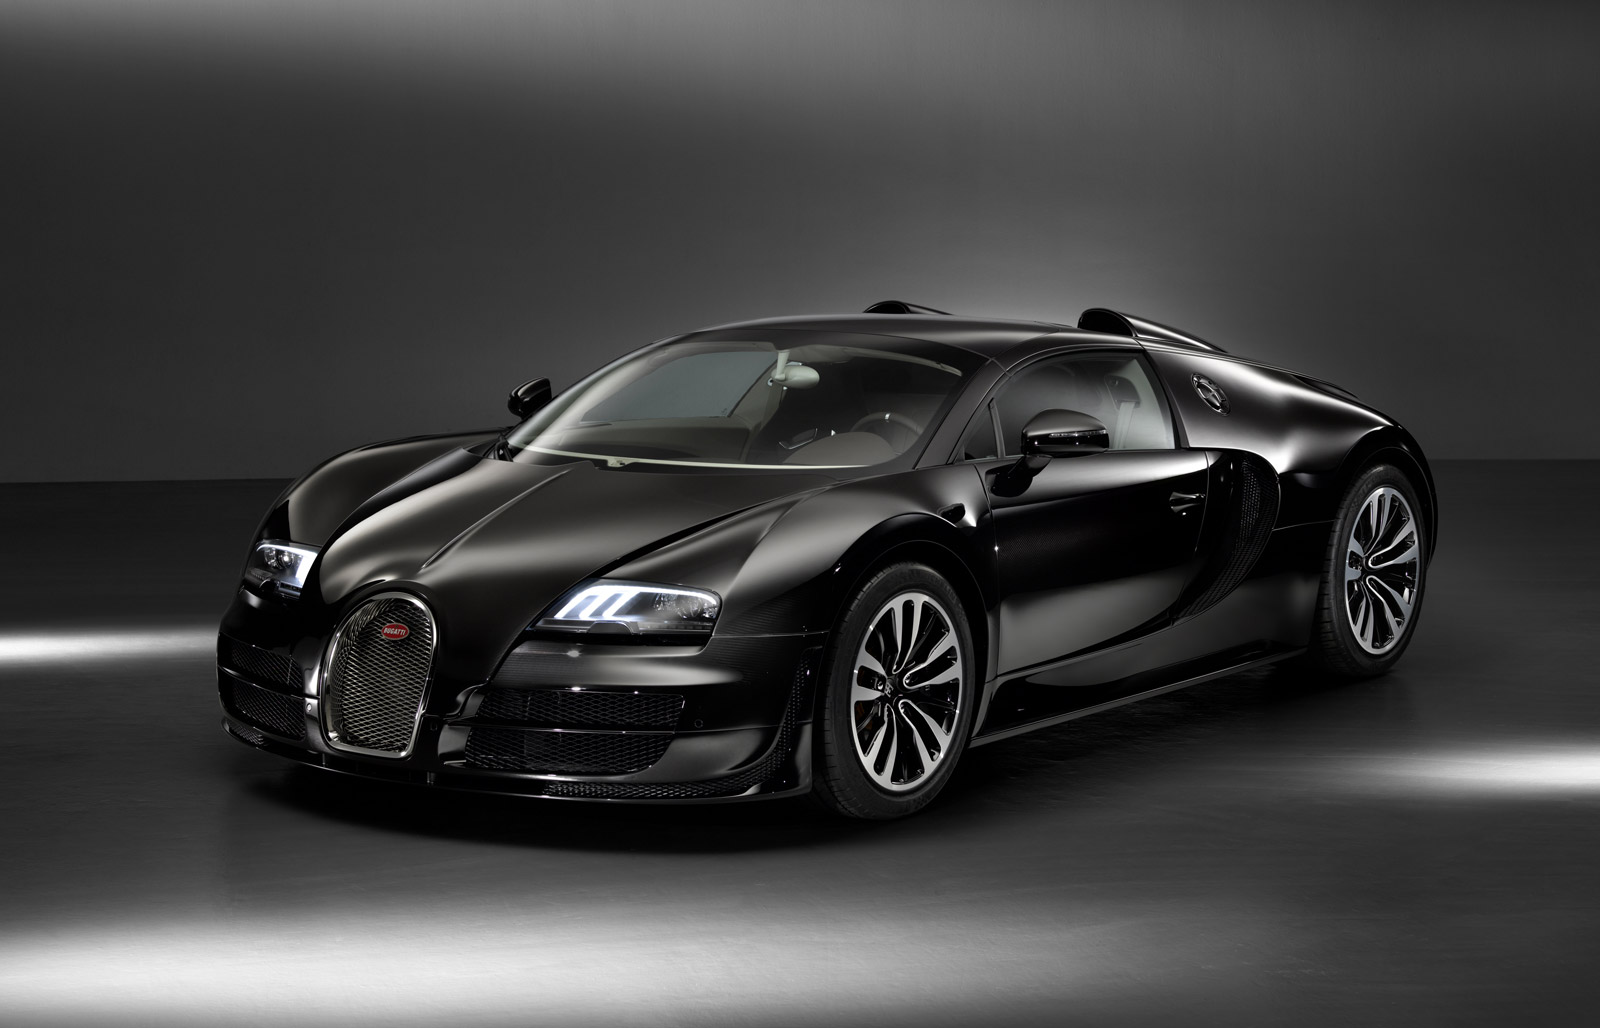 Jean Bugatti Honored With New Legend Veyron Special Edition